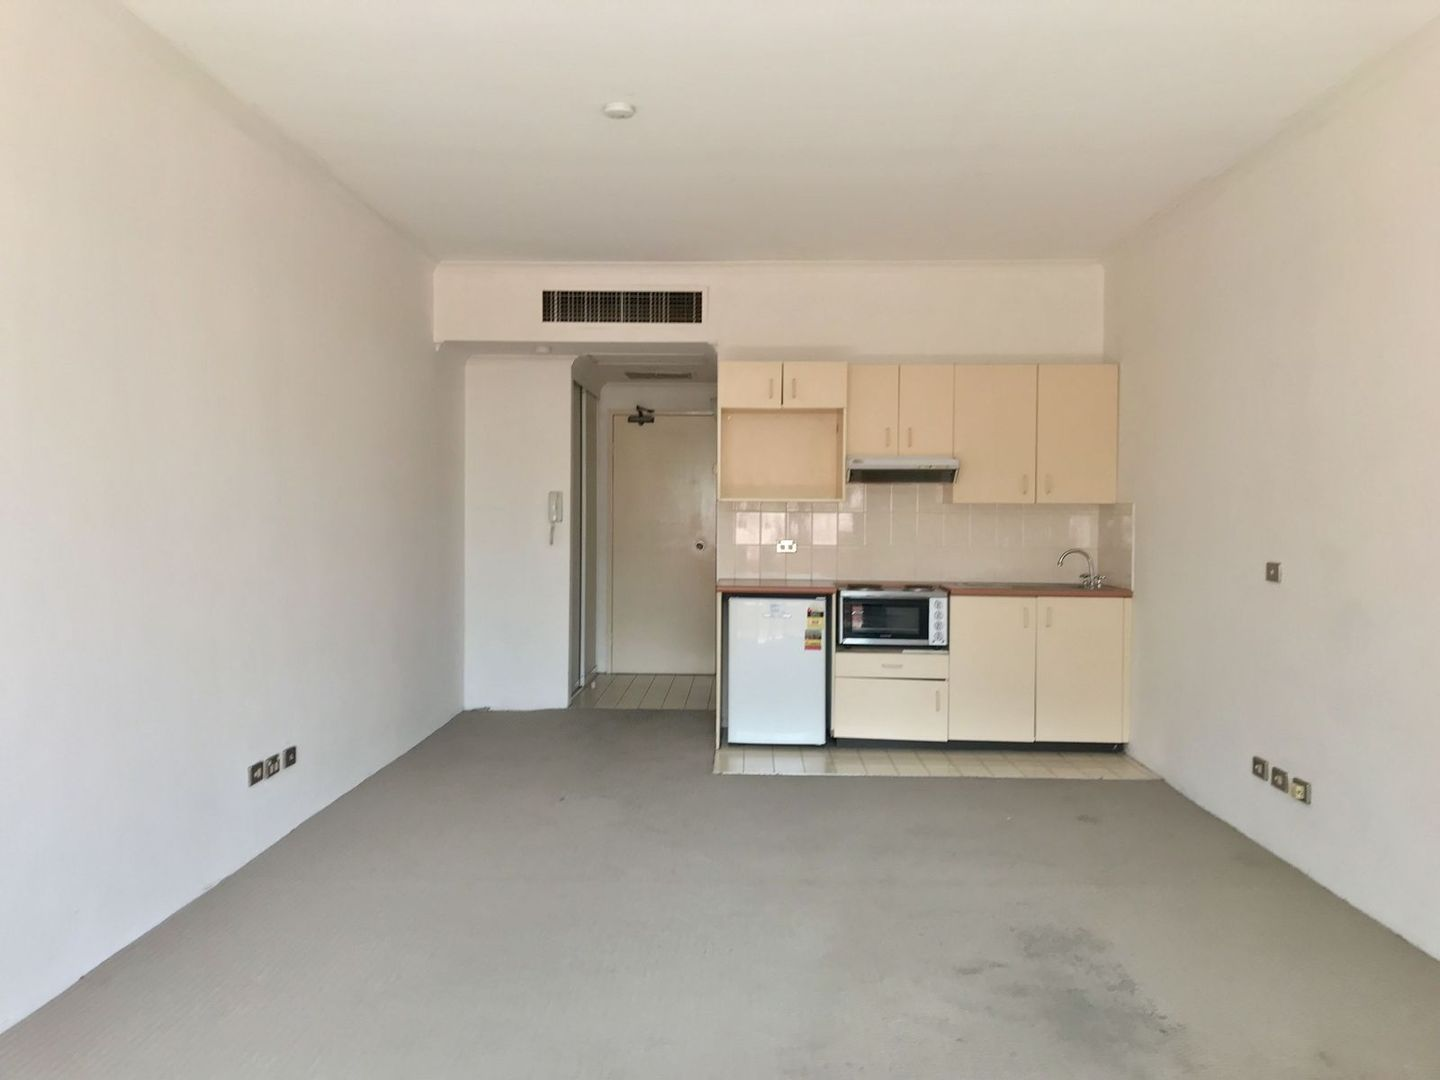 77/75-79 Jersey Street North, Hornsby NSW 2077, Image 2